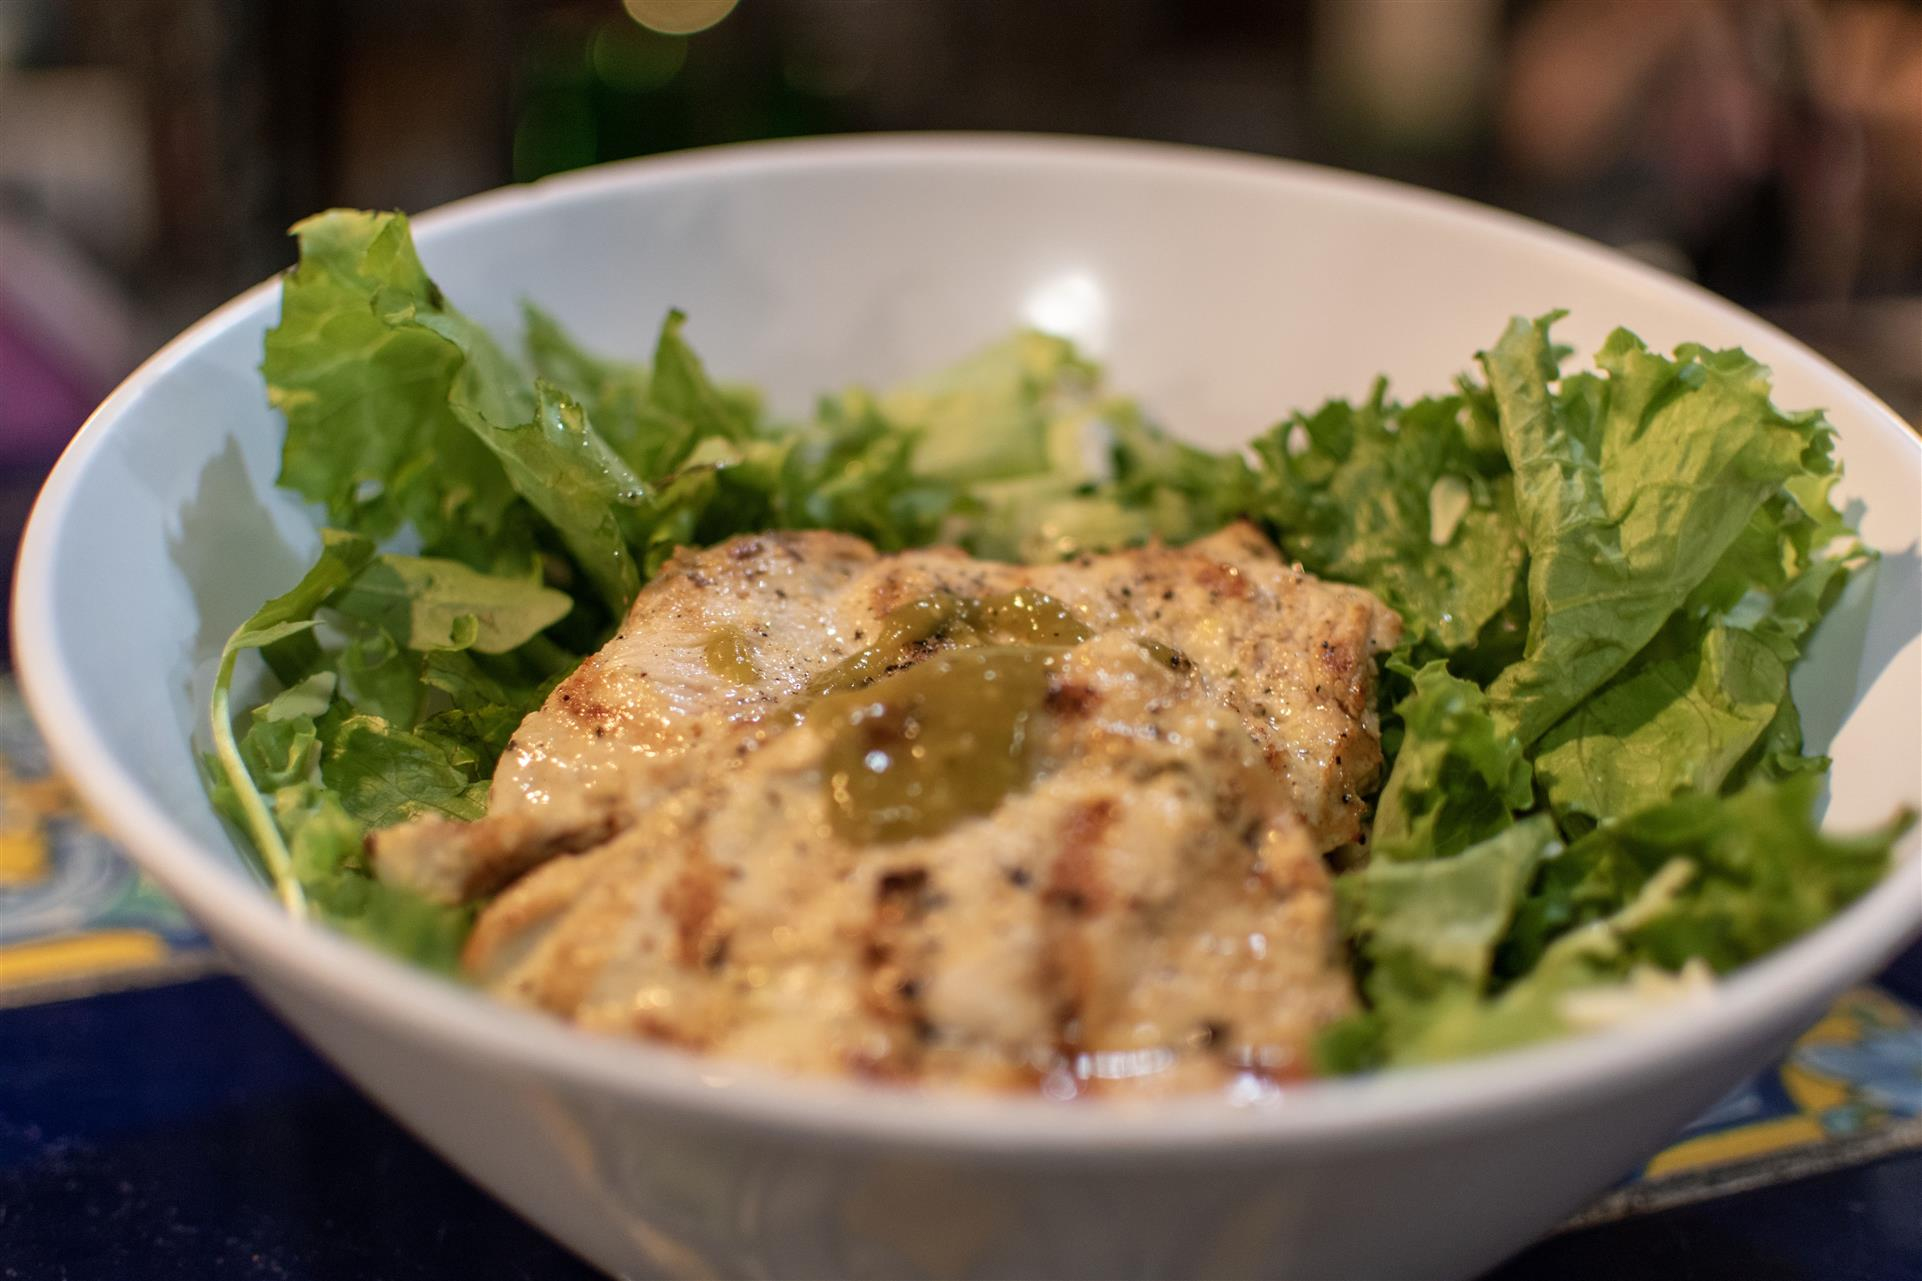 caesar sald topped with grilled chicken